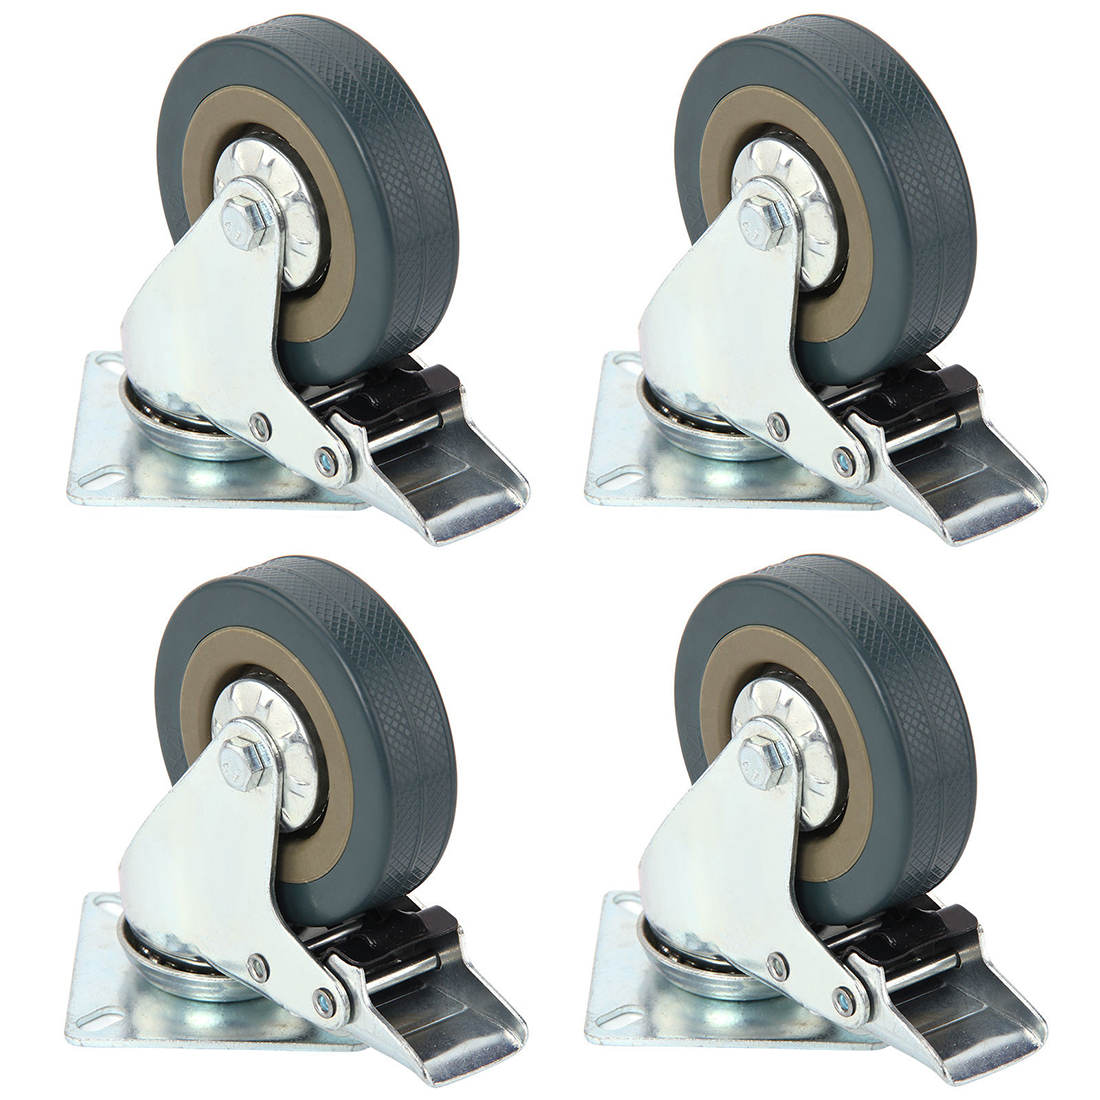 Set of Heavy Duty 50x17mm Rubber Swivel Castor Wheels Trolley Caster Brake 40KGModel:4 with brake ys 138no nc ansi standard heavy duty electric strike size 124 x 32 x 33 mm